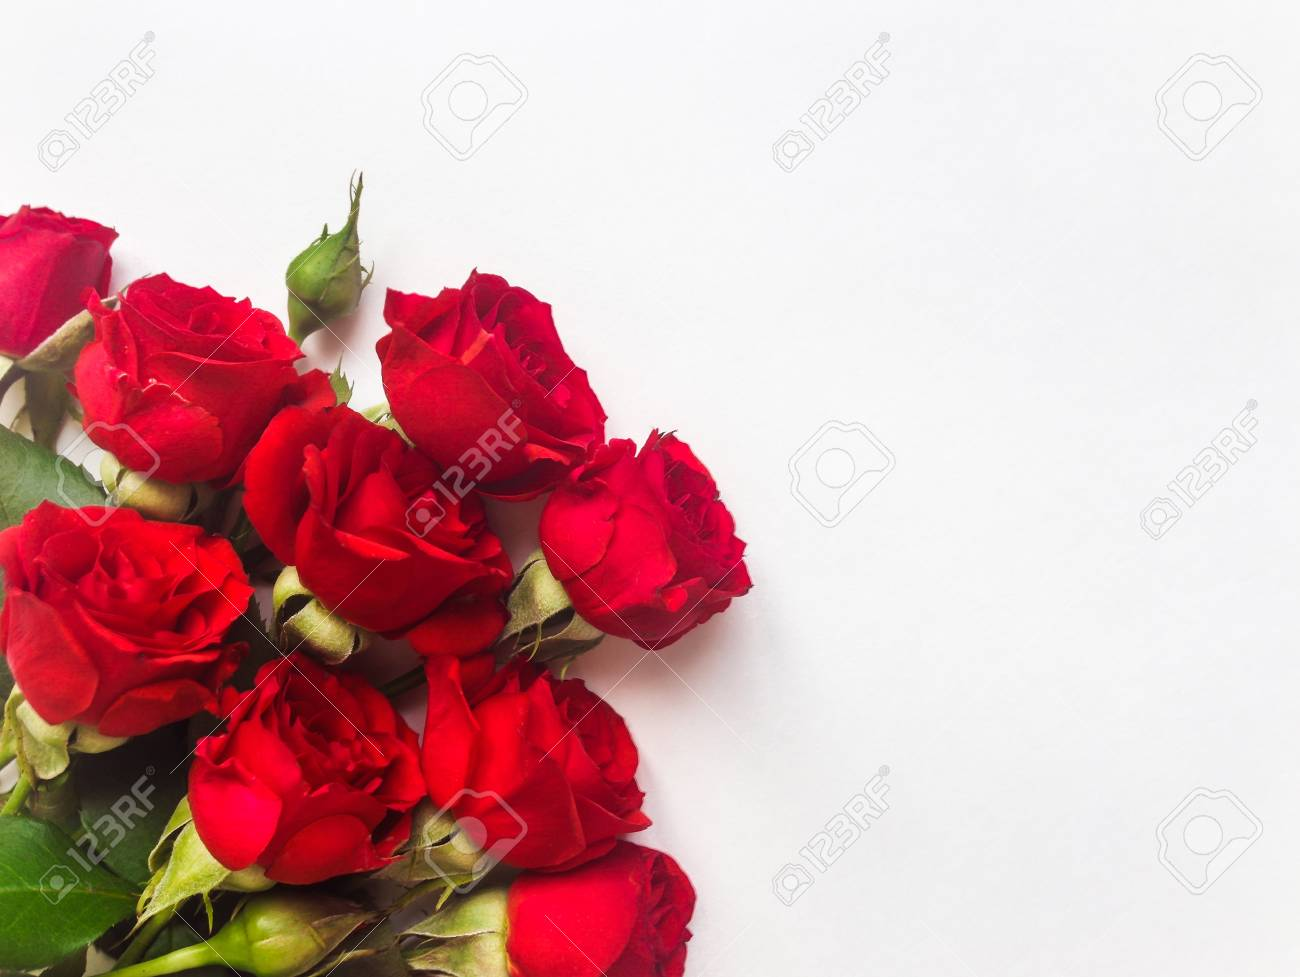 Bunch Of Small Beautiful Red Rose Flowers Isolated On White